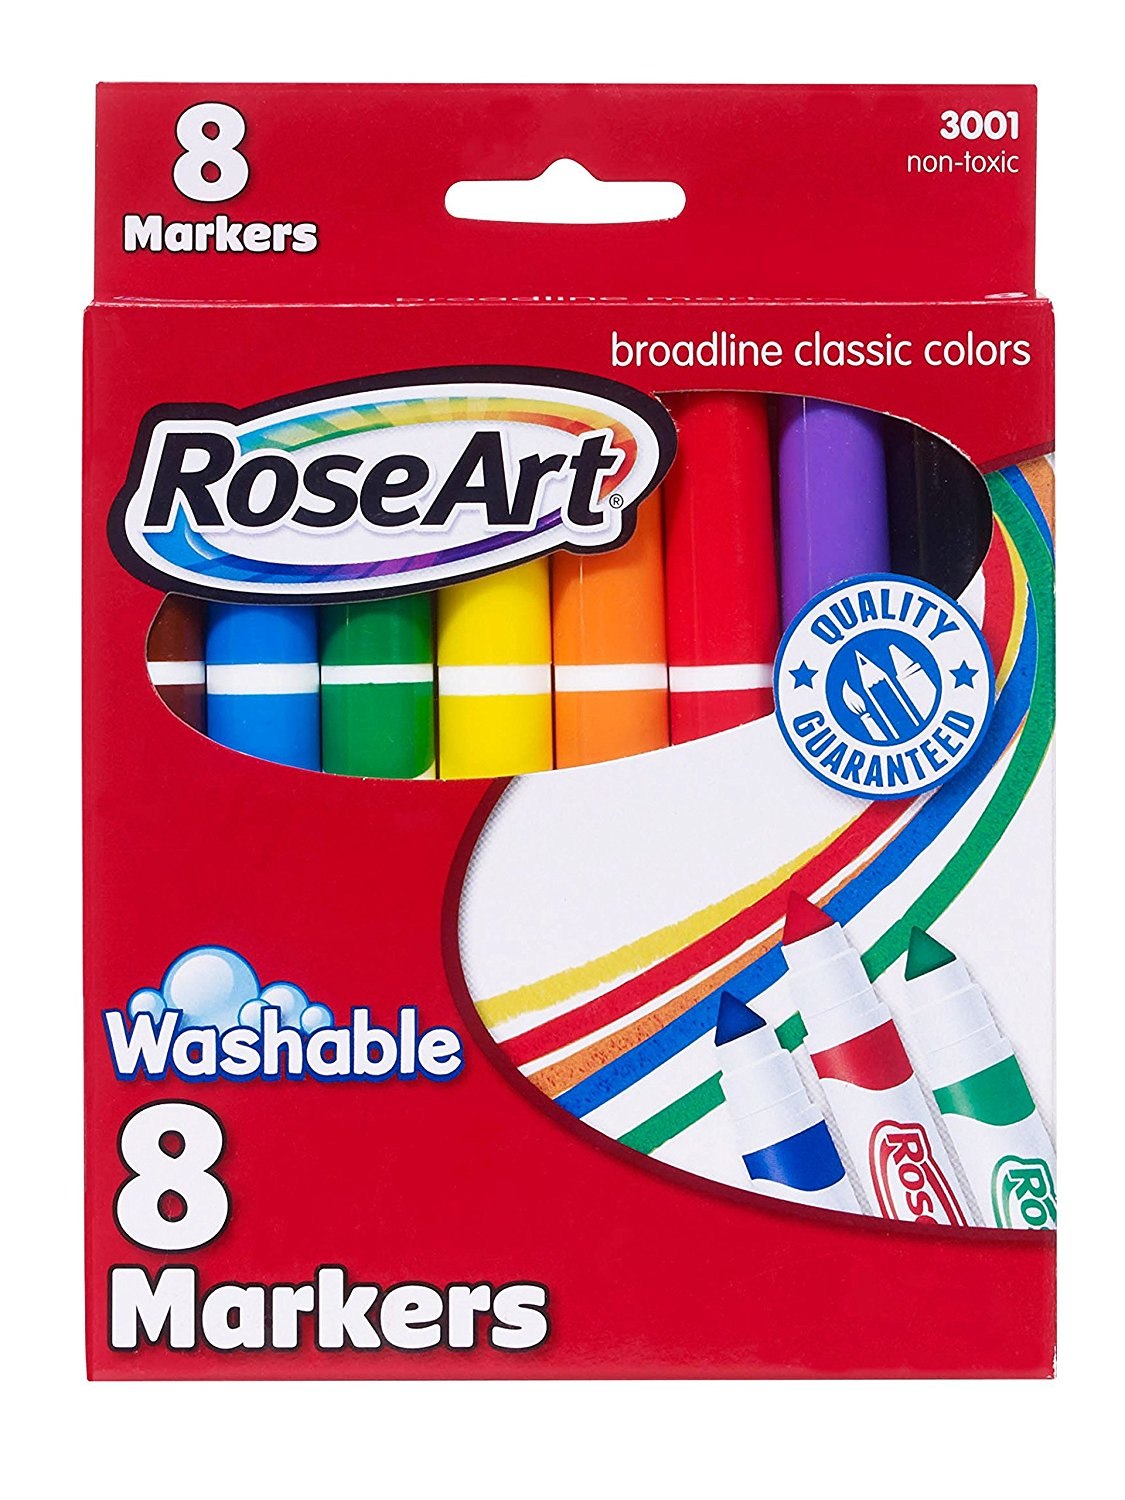 Mattel RoseArt Classic Washable Broadline Markers 8-Count Packaging May Vary DDT57